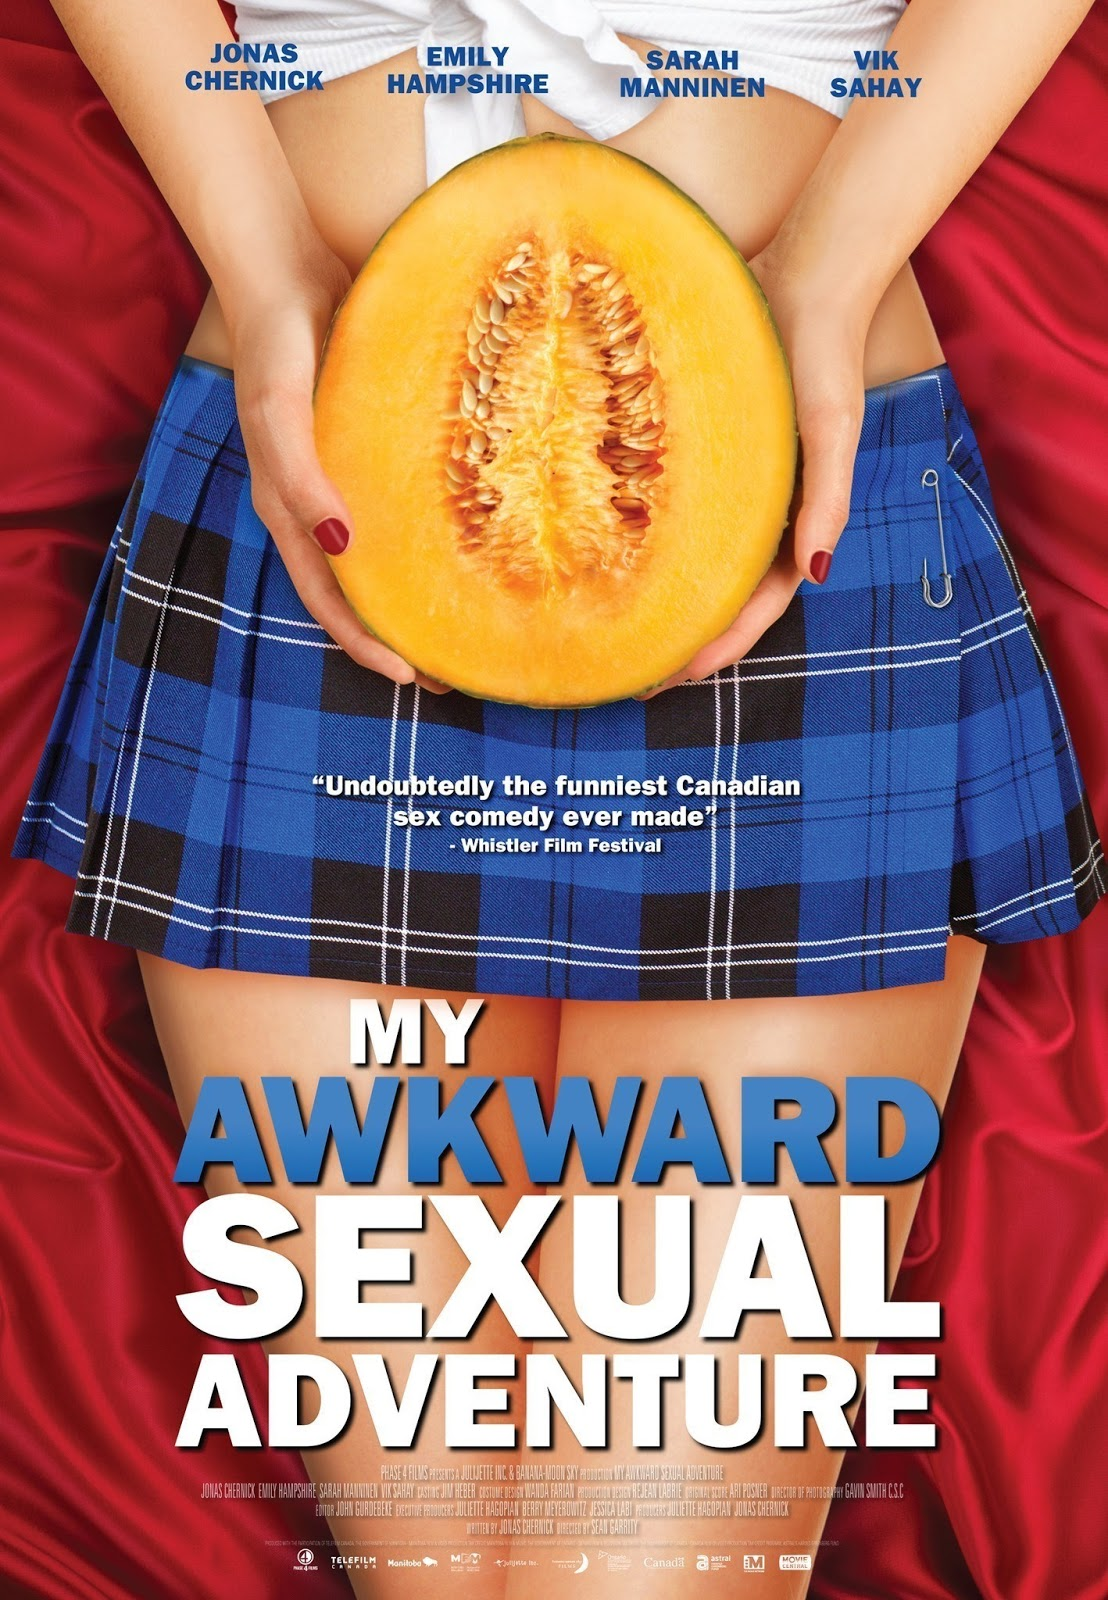 My Awkward Sexual Adventure (2012) ταινιες online seires oipeirates greek subs